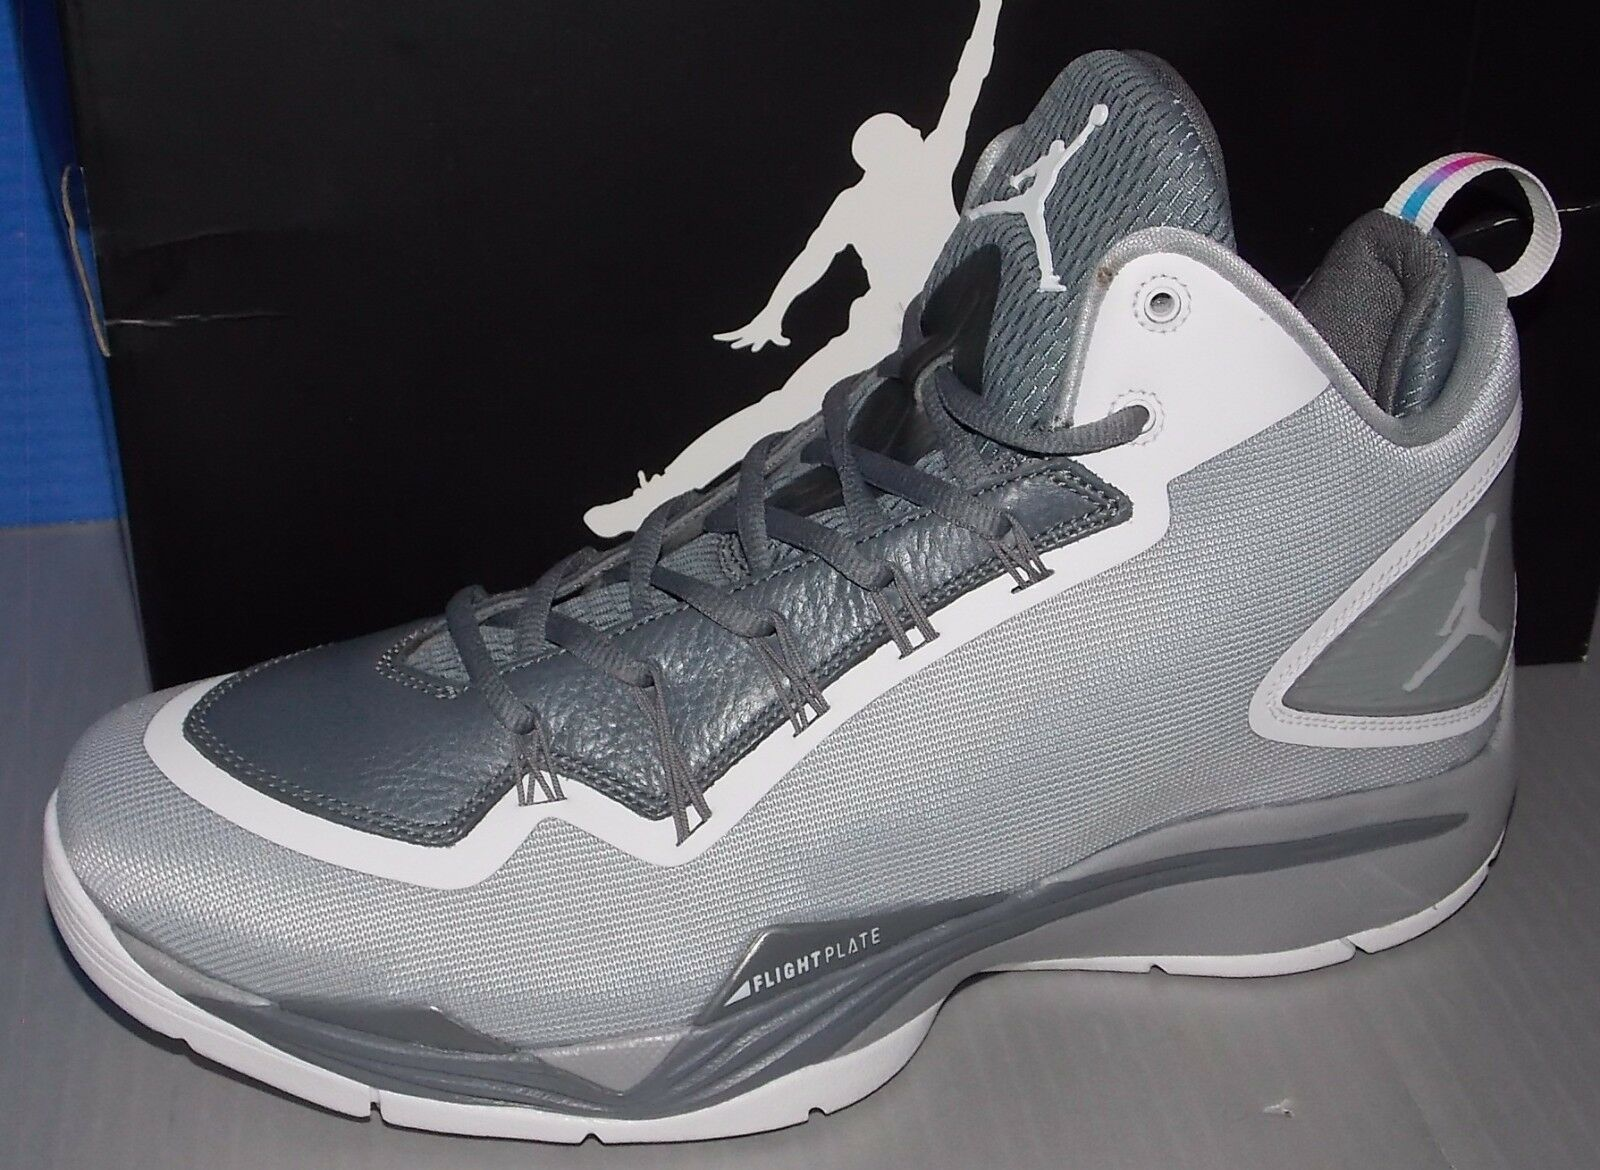 MENS NIKE JORDAN SUPER.FLY 2 PO WOLF GREY / WHITE / COOL GREY SIZE 11.5 best-selling model of the brand